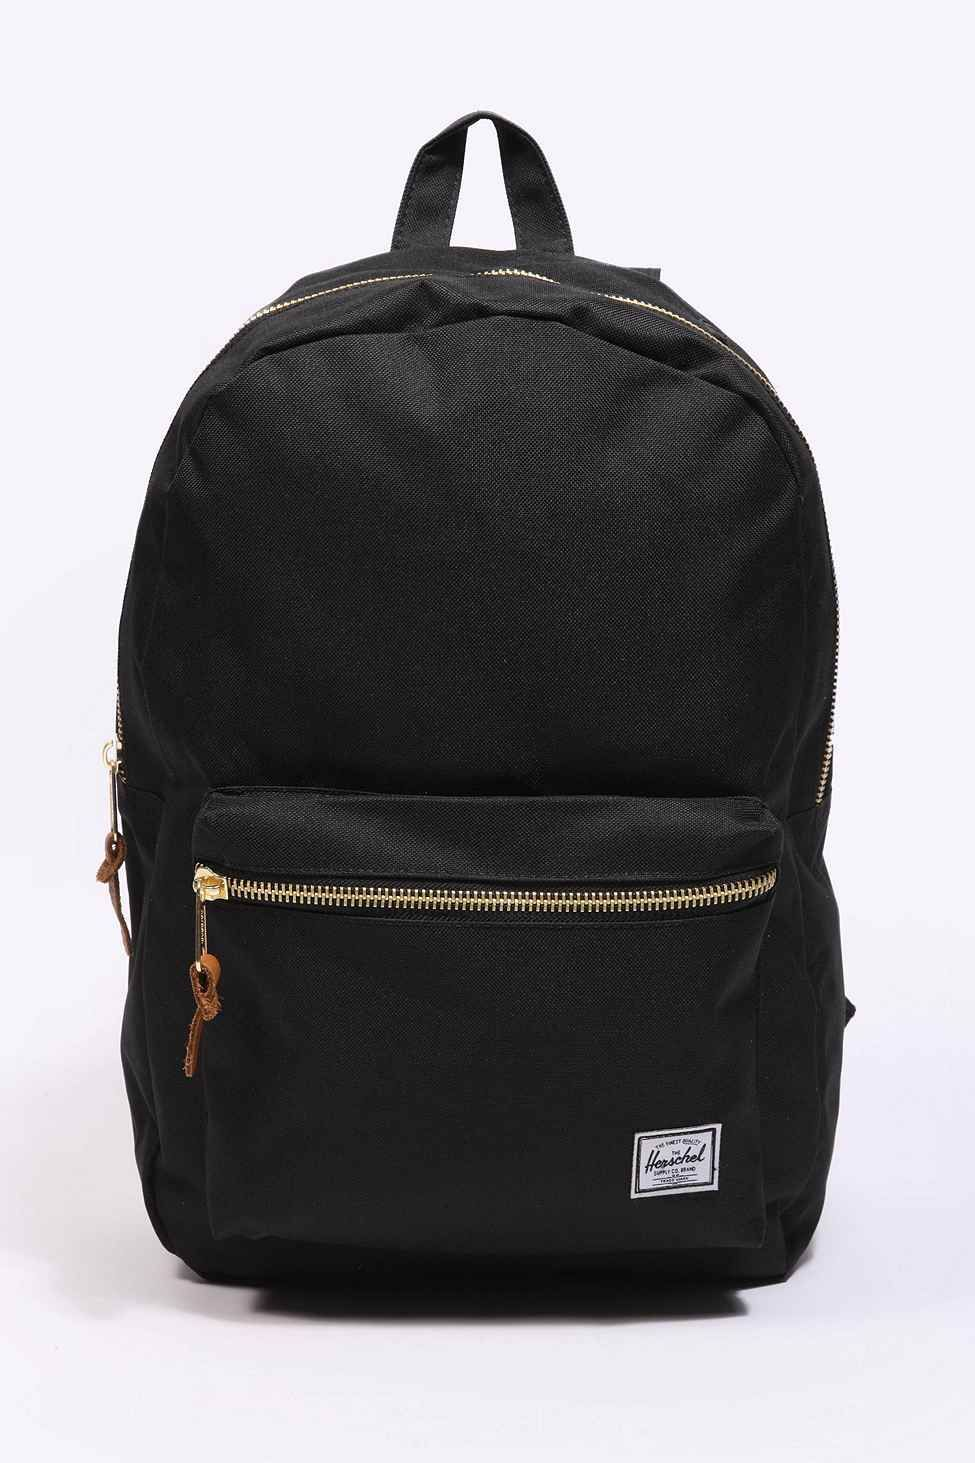 Herschel Settlement Backpack in Black Urban Outfitters Herr 58a84cf5b1143